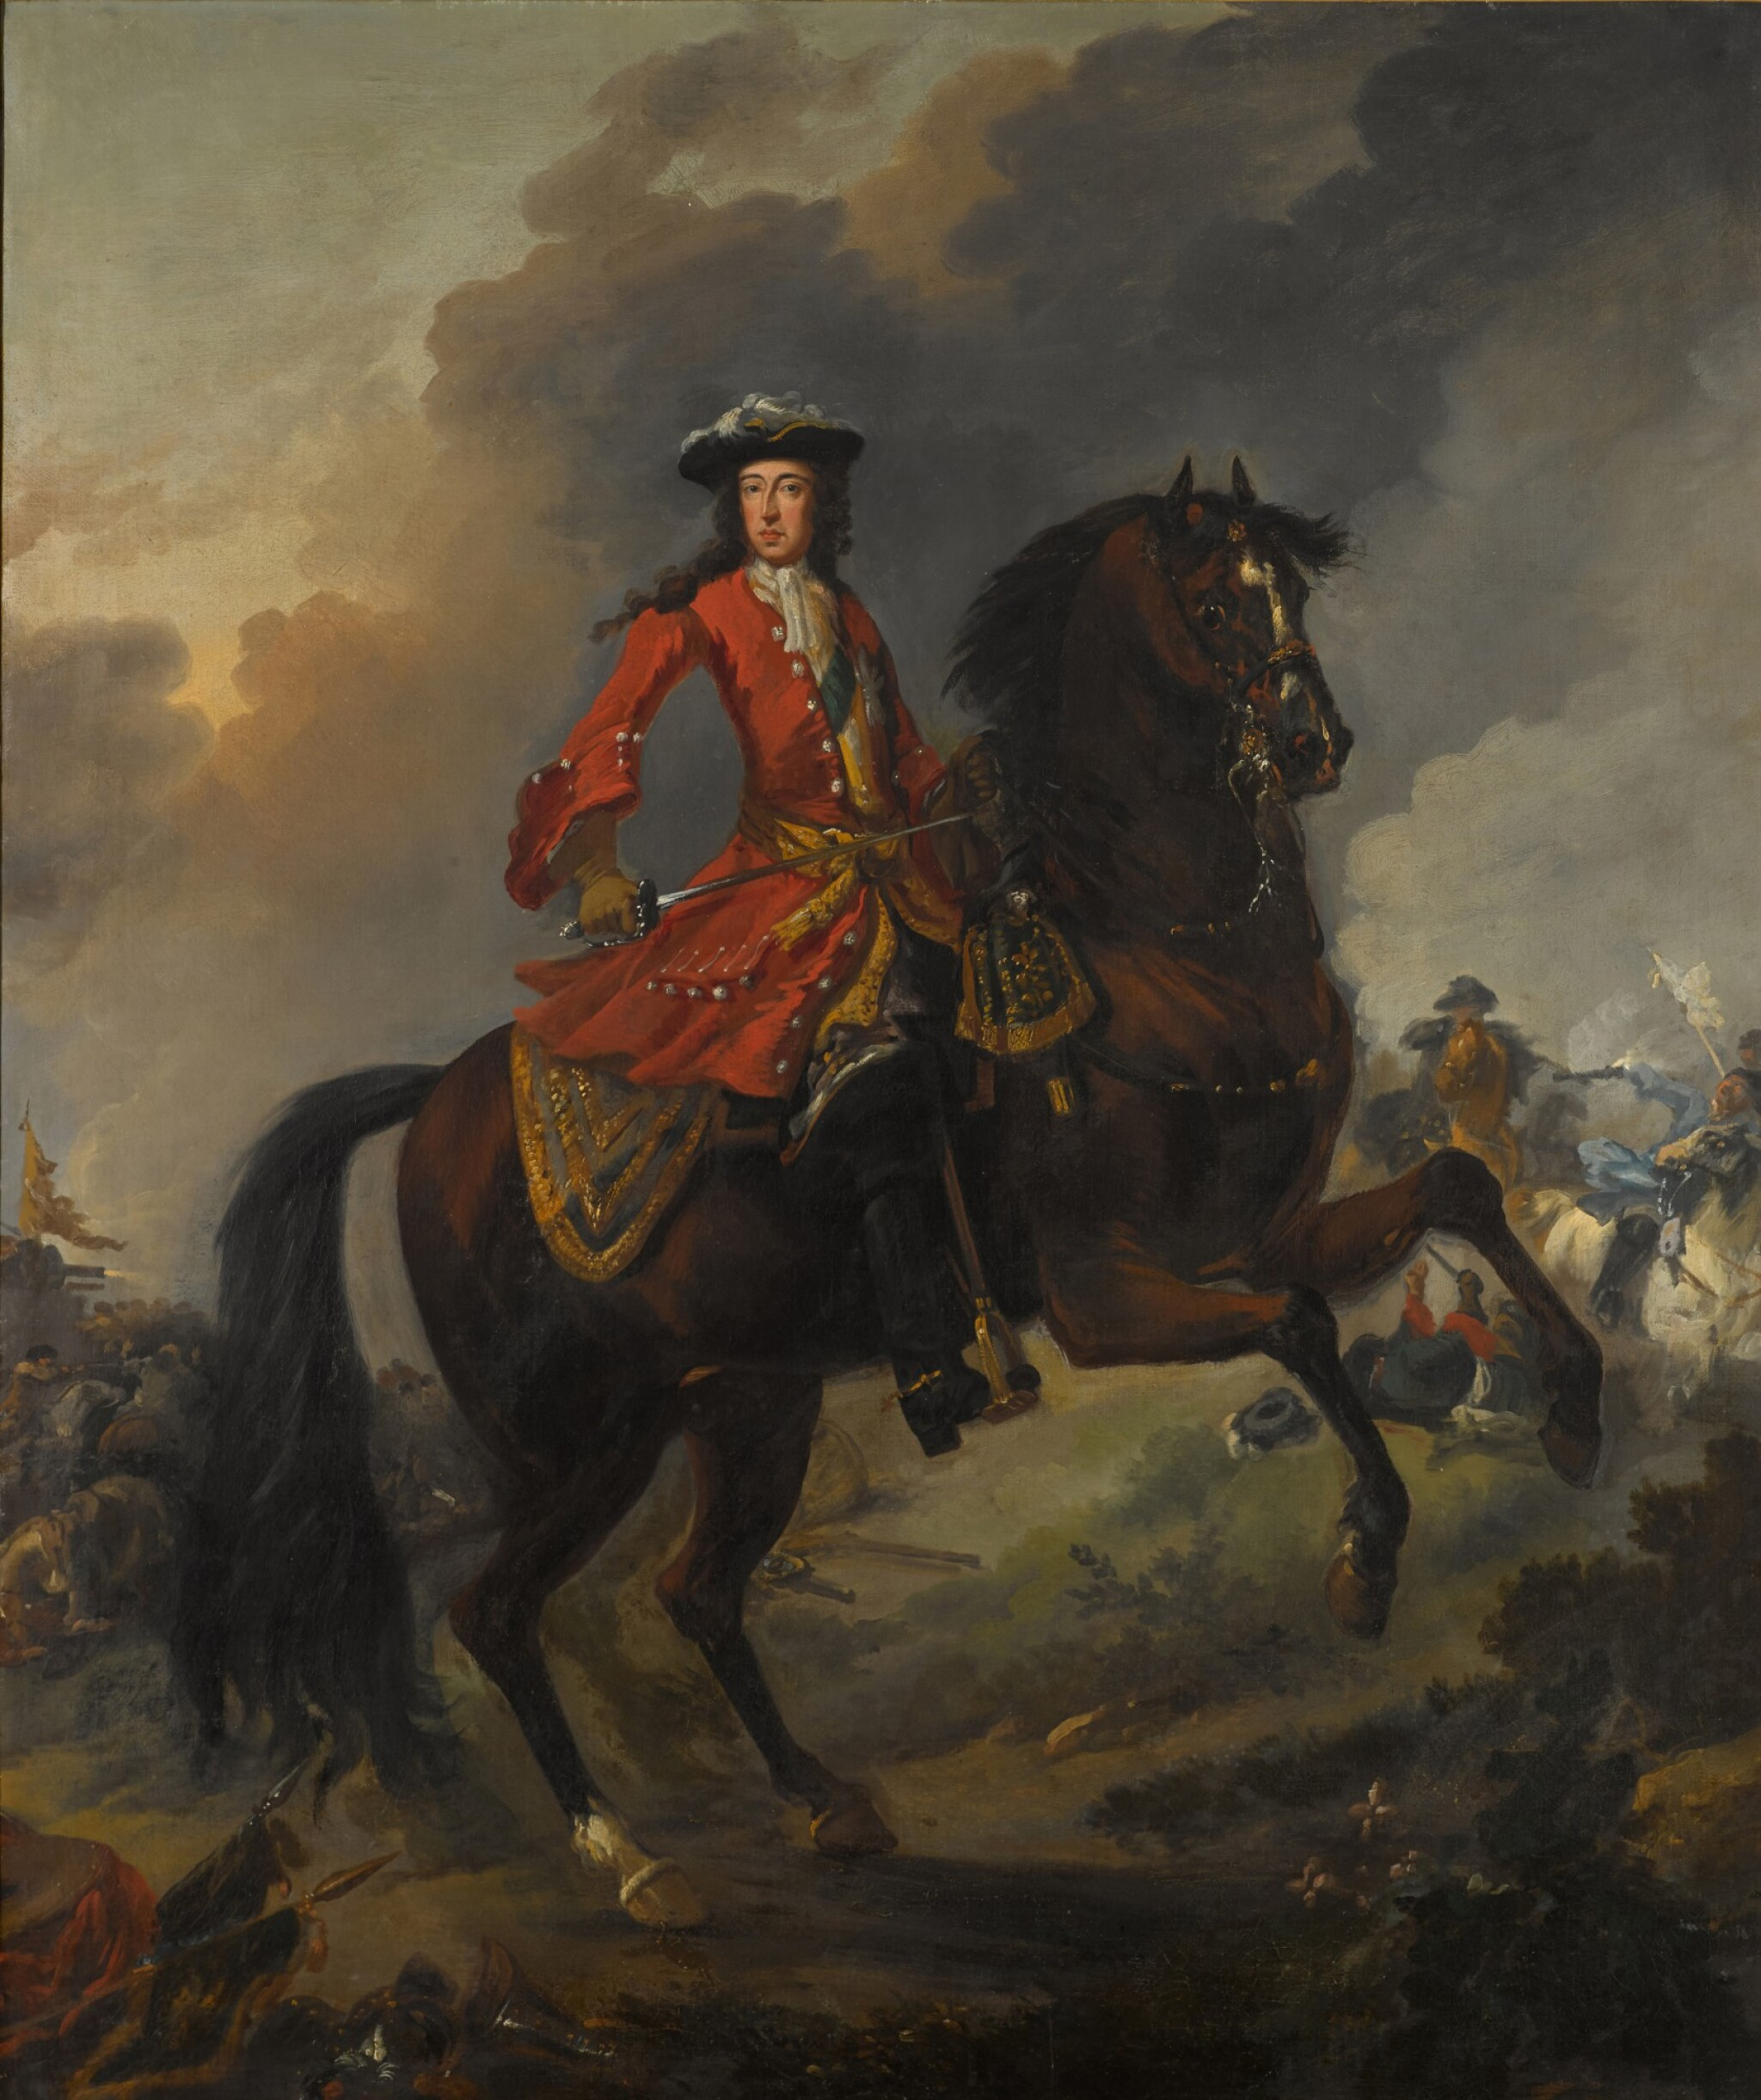 View 1 of Lot 144. Equestrian Portrait of King William III (1650-1702), a battle beyond.